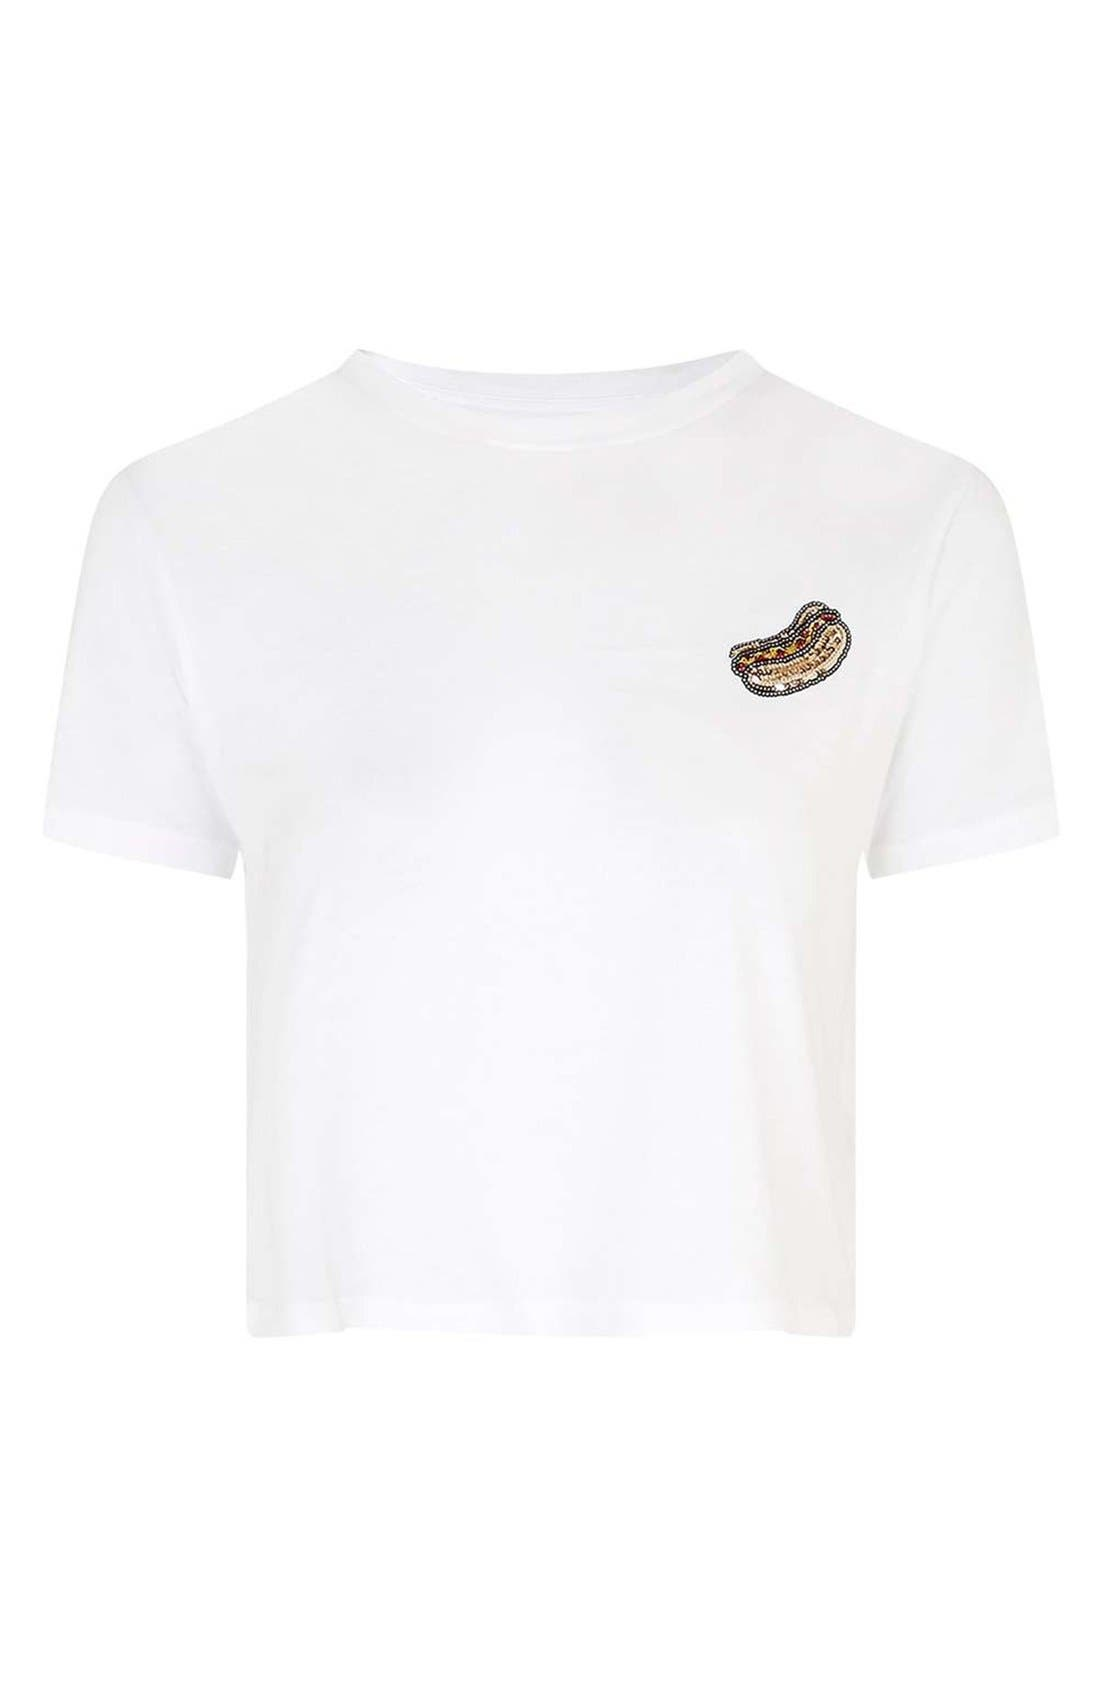 Alternate Image 4  - Topshop by Tee & Cake Sequin Hot Dog Tee